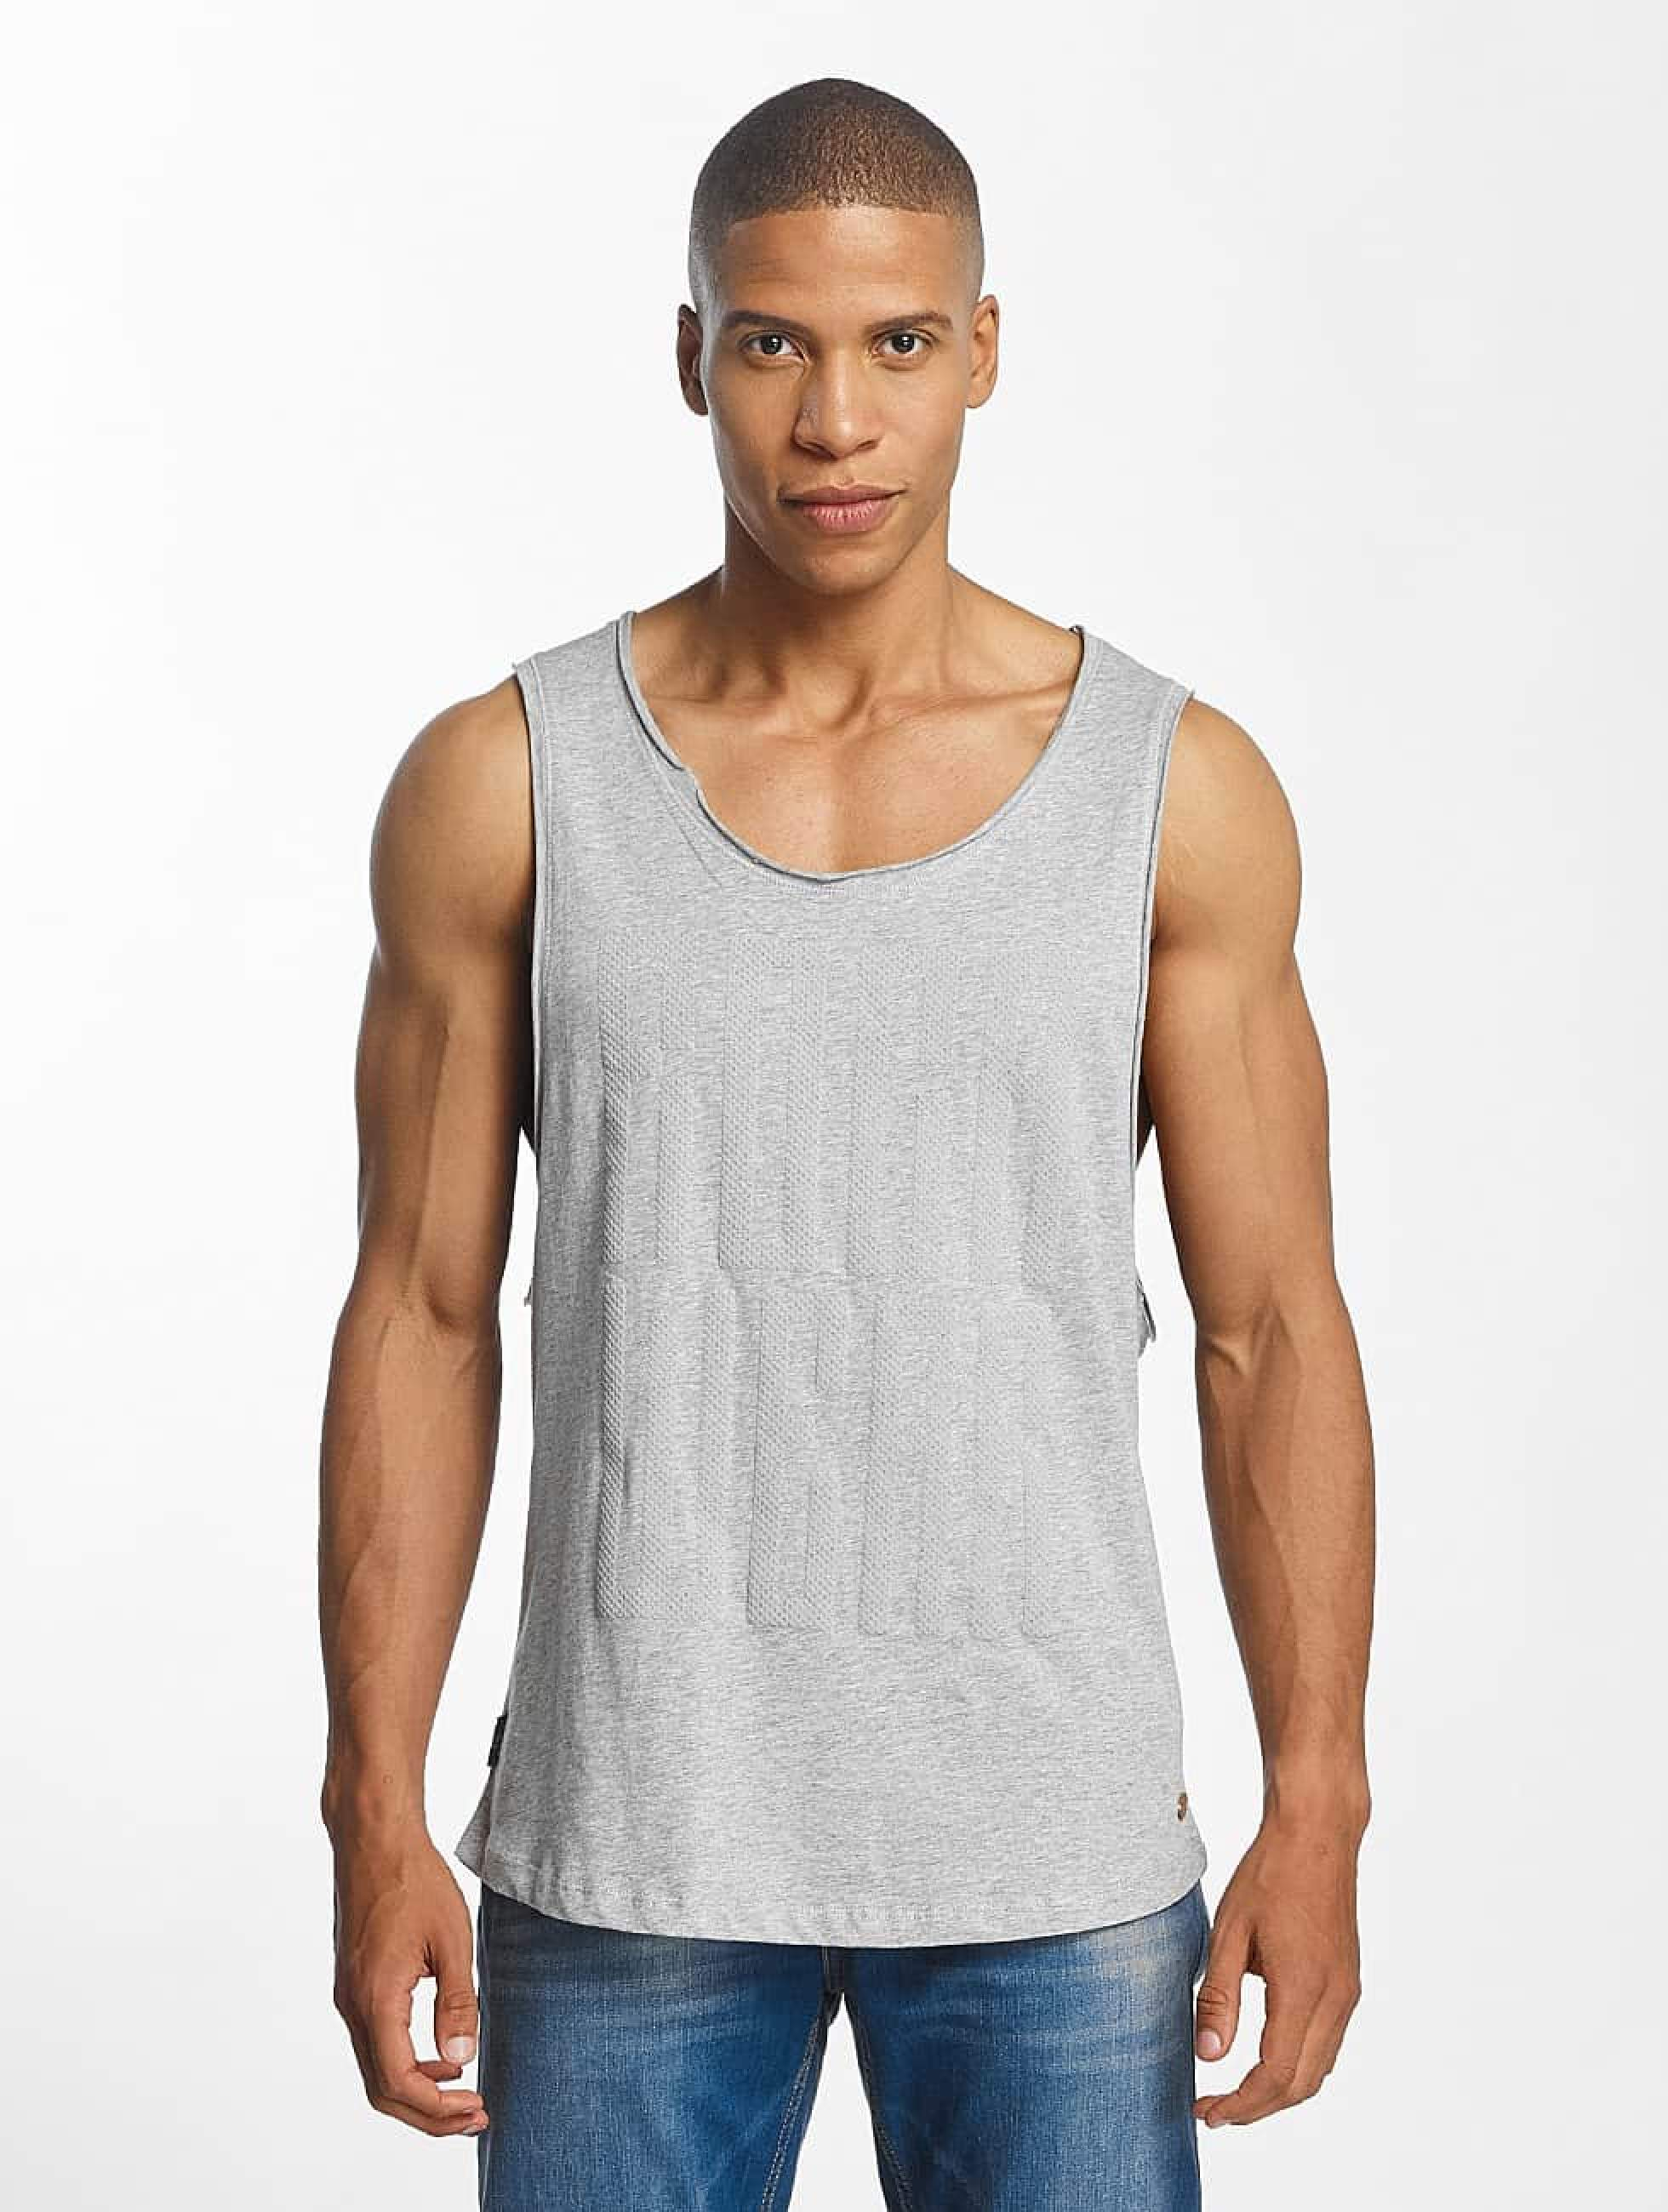 Rocawear / Tank Tops Charly in grey S